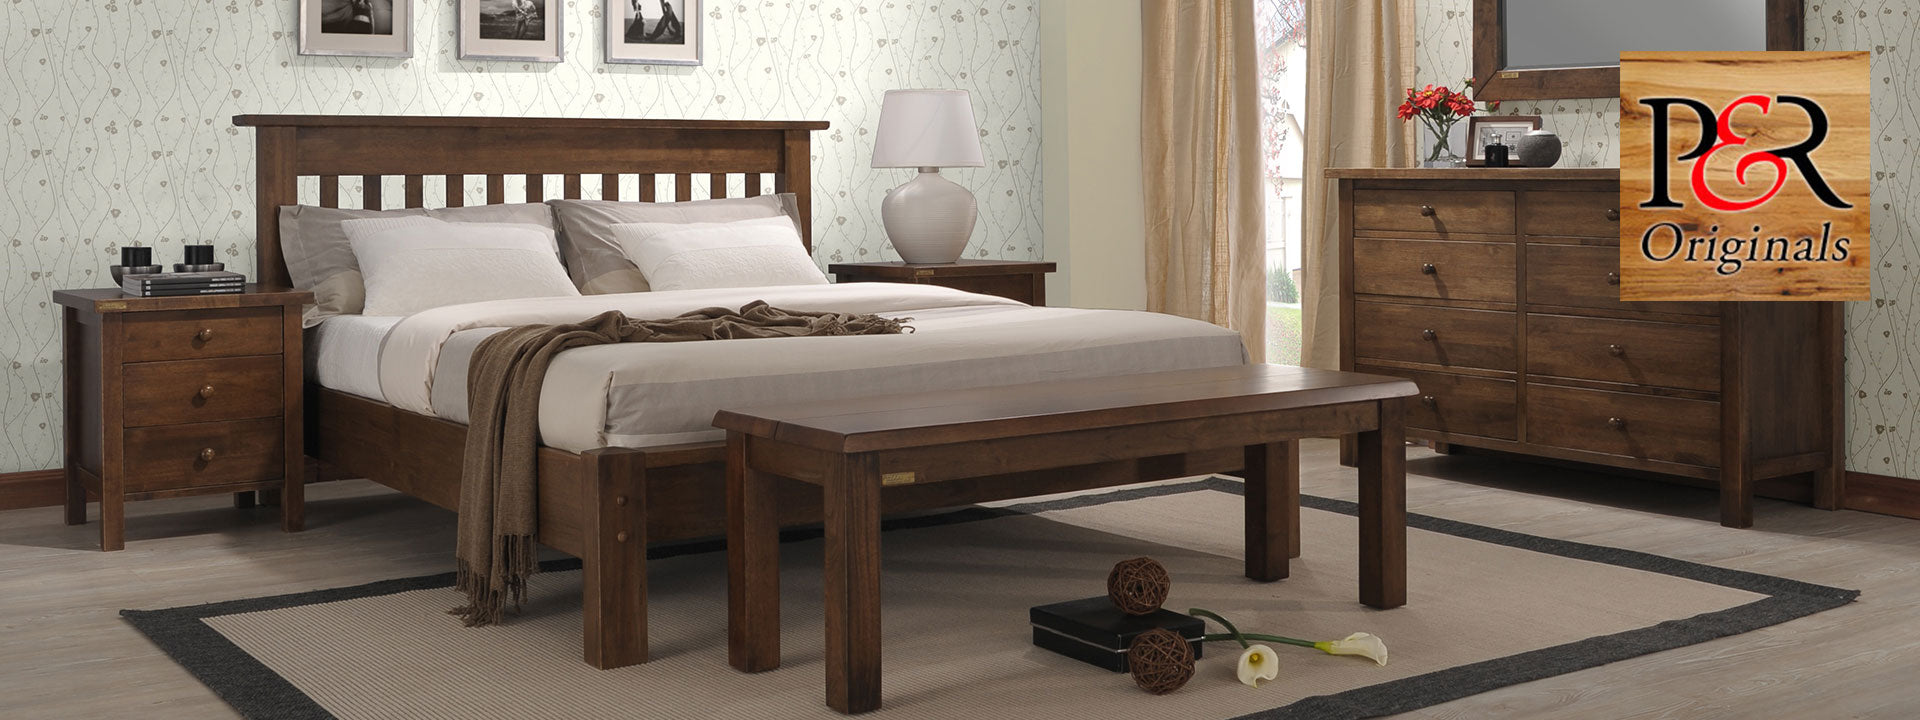 Bedroom Furniture Kitchener Bedroom Galleries Picketrail Singapores Premium Furniture Retailer